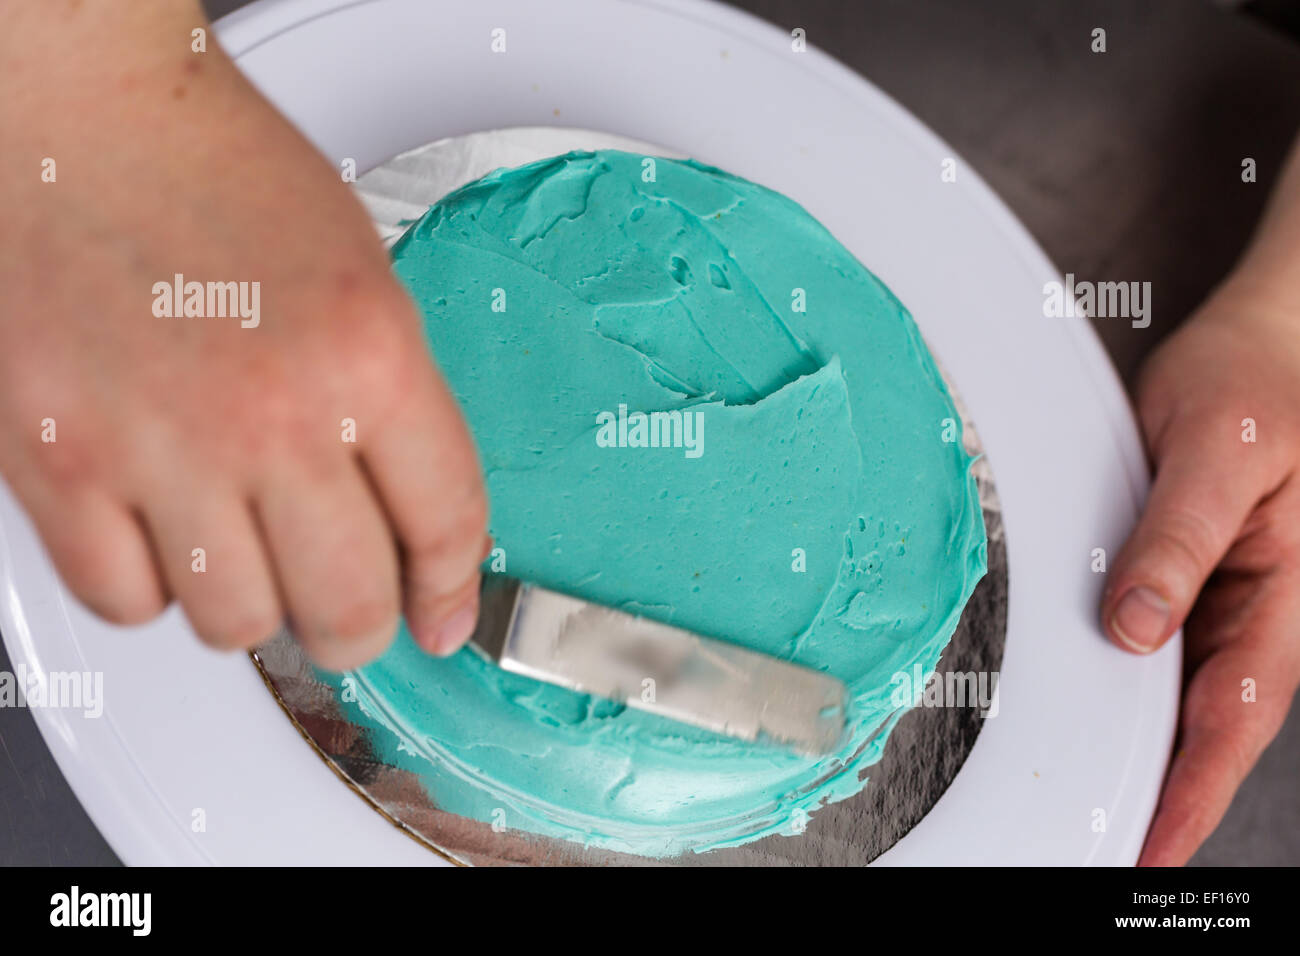 Making Small Birthday Cake Toddlers Stock Photos Making Small